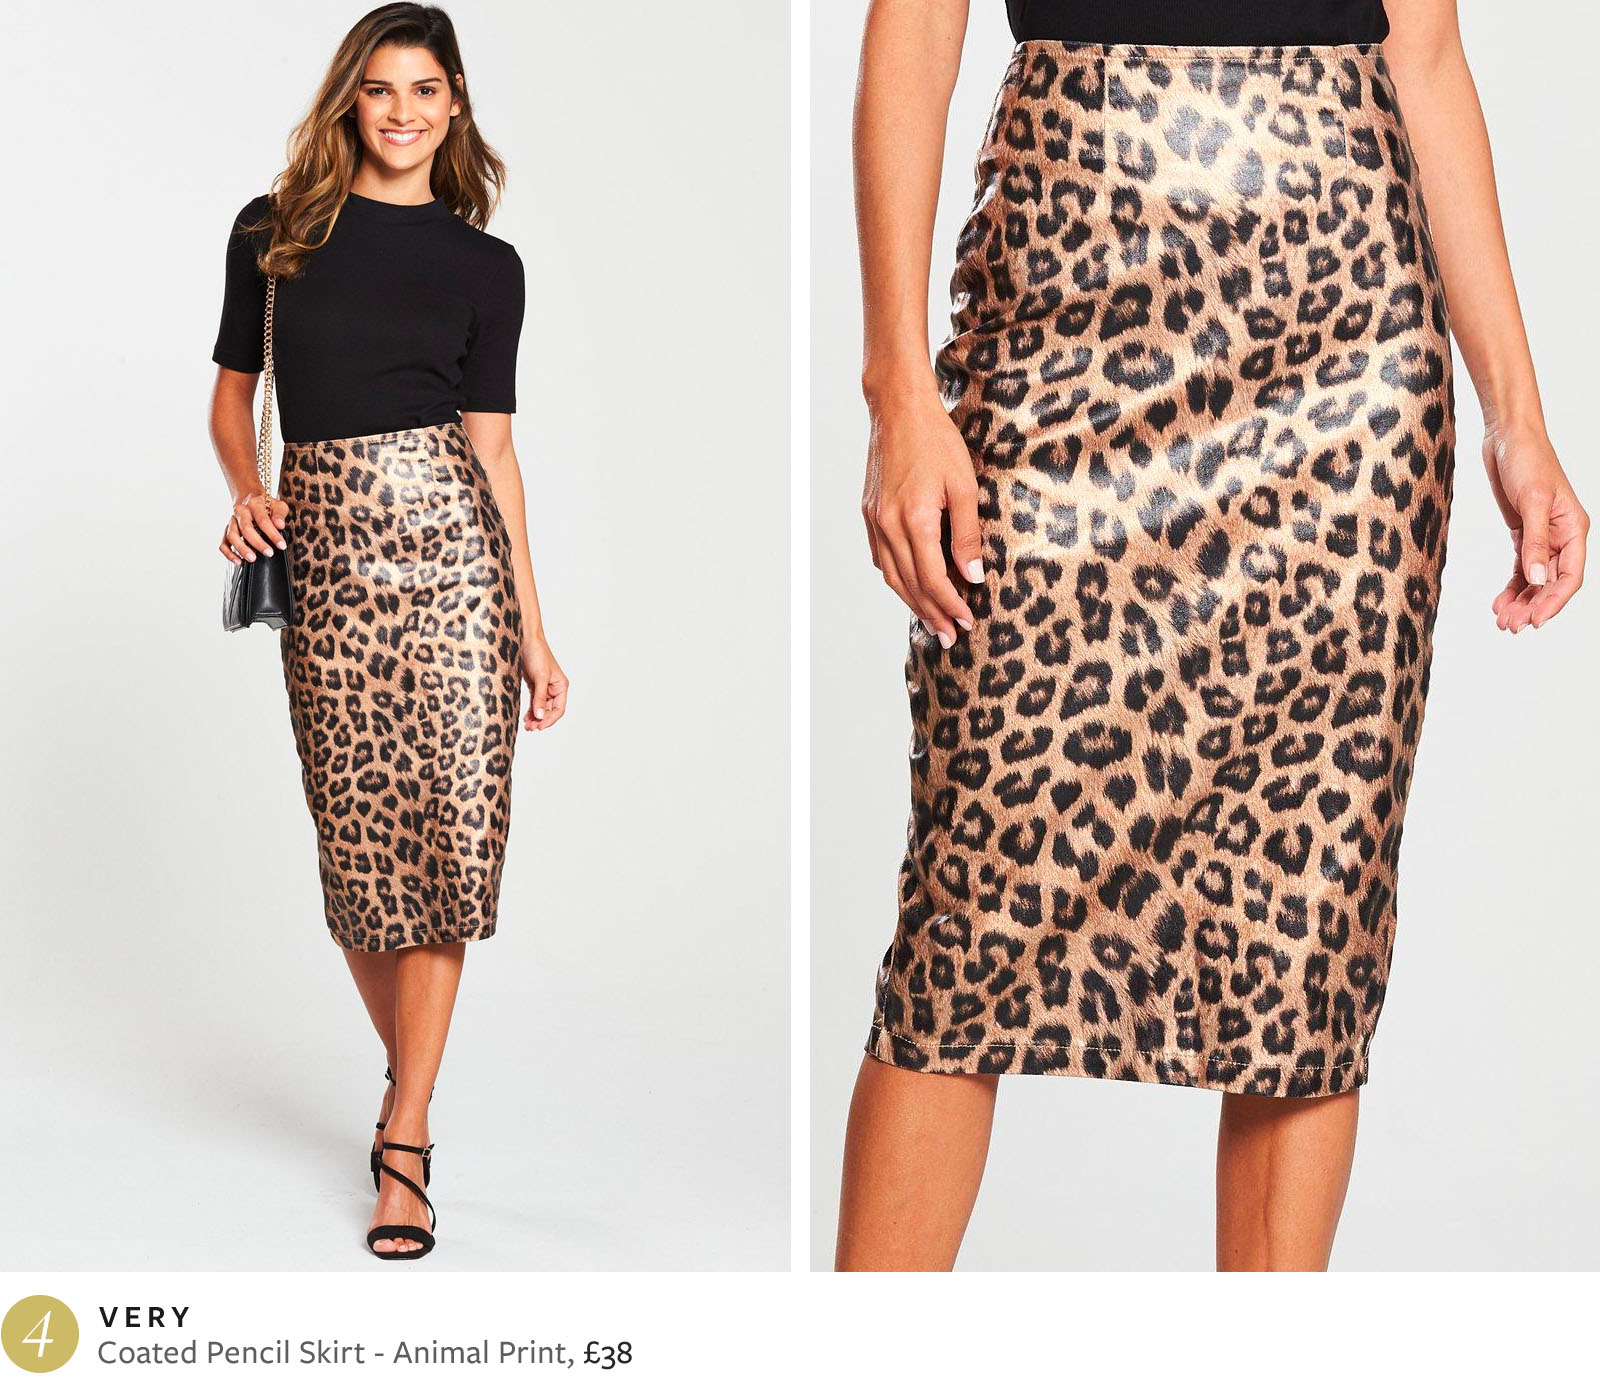 Very coated pencil skirt animal print